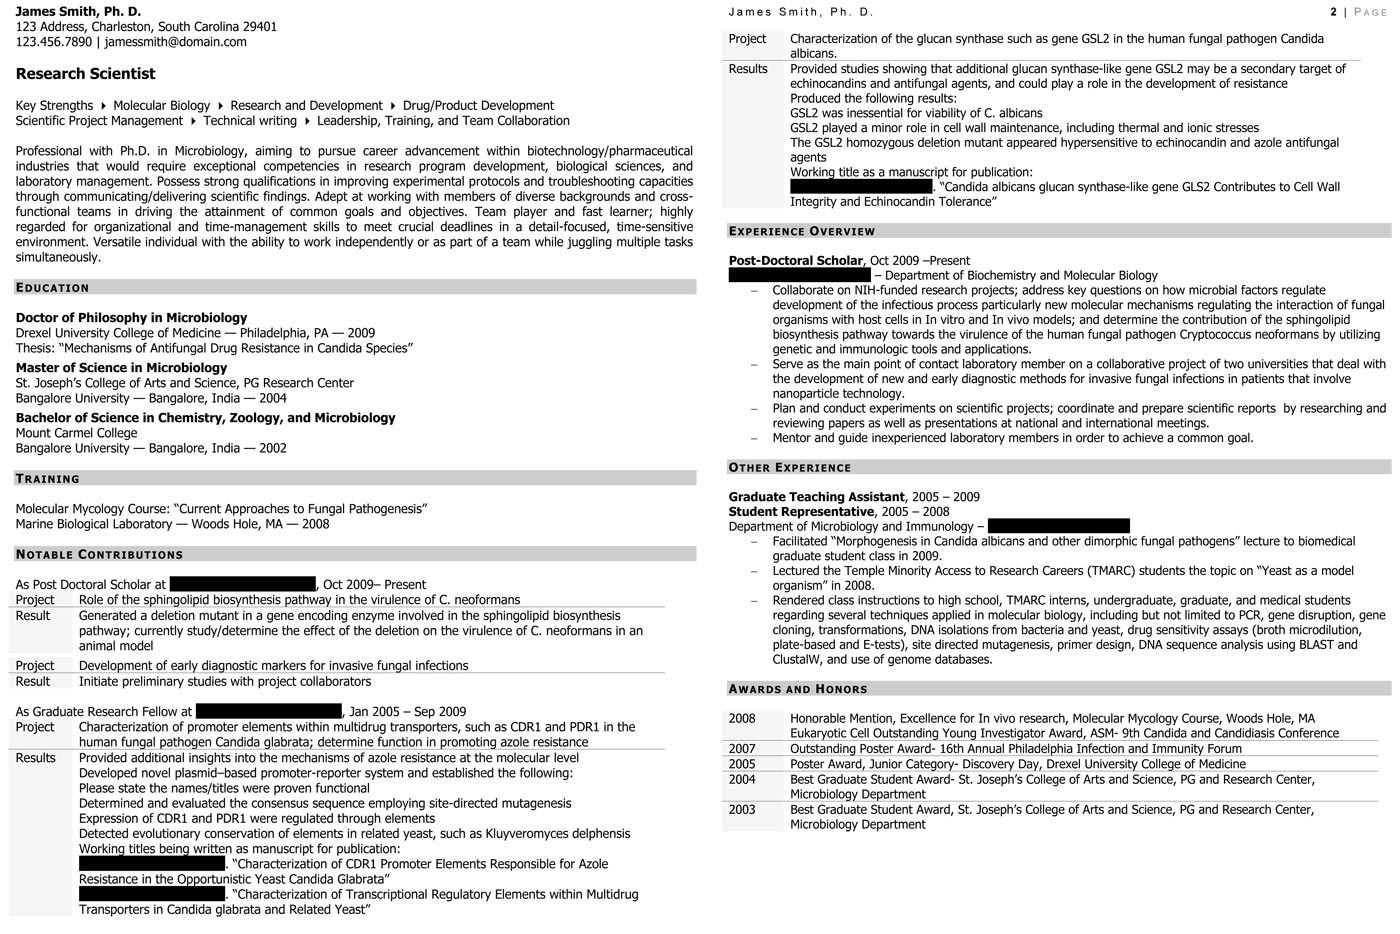 sample civilian and federal resumes resume valley research scientist resume